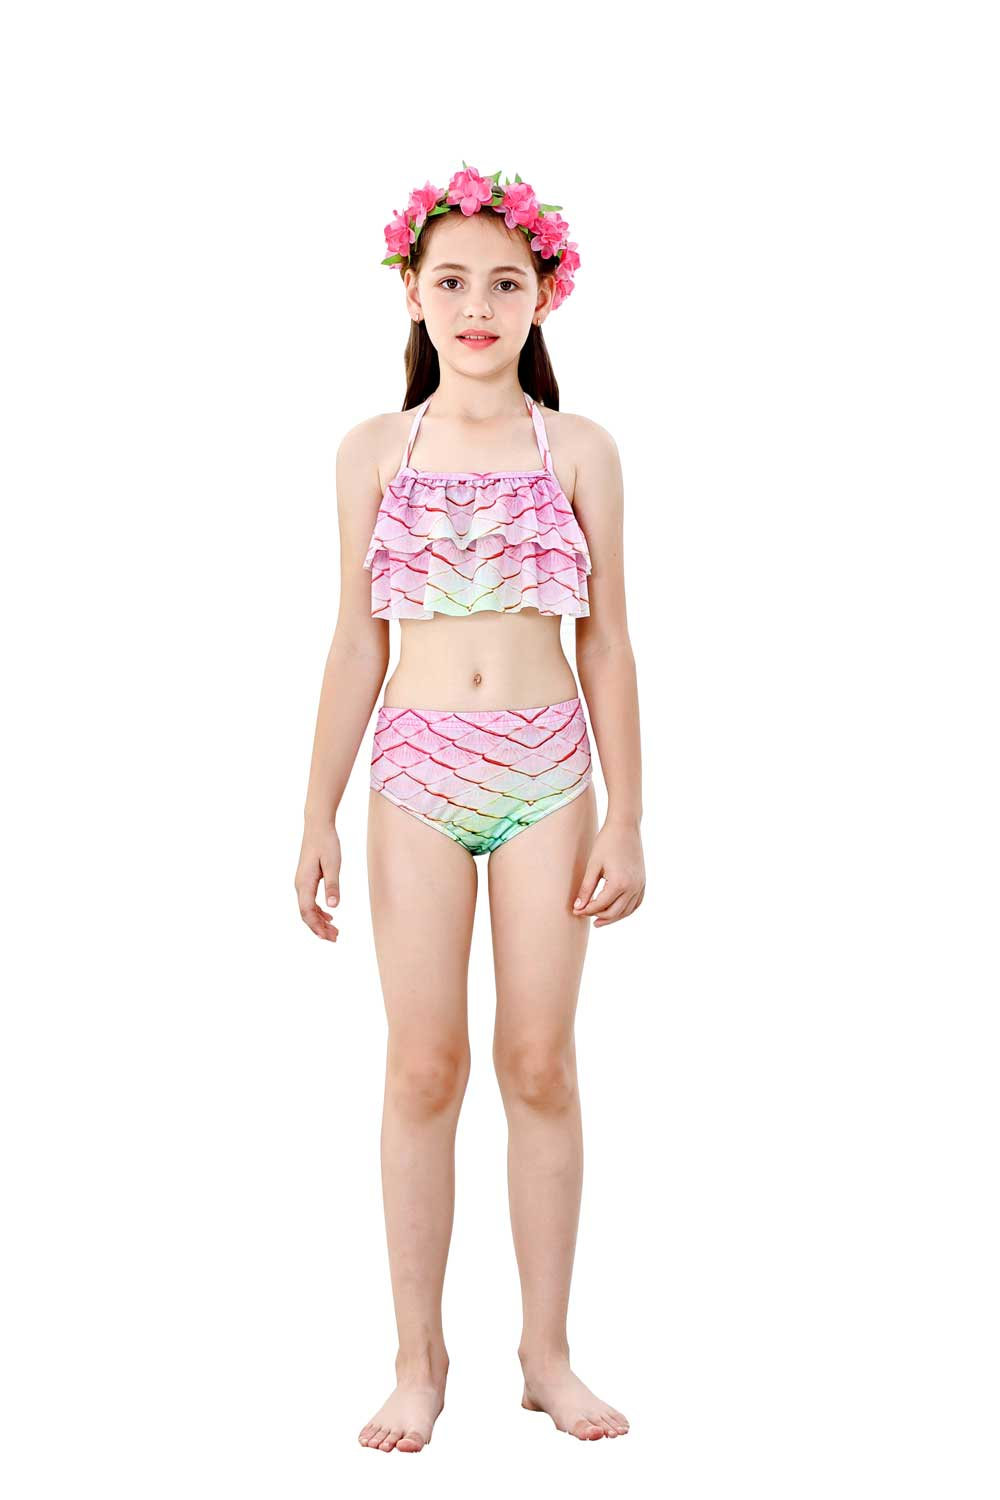 H77229c573efc455b9006c074e5237914y - 4PCS/Set HOT Kids Girls Mermaid Tails with Fin Swimsuit Bikini Bathing Suit Dress for Girls With Flipper Monofin For Swim